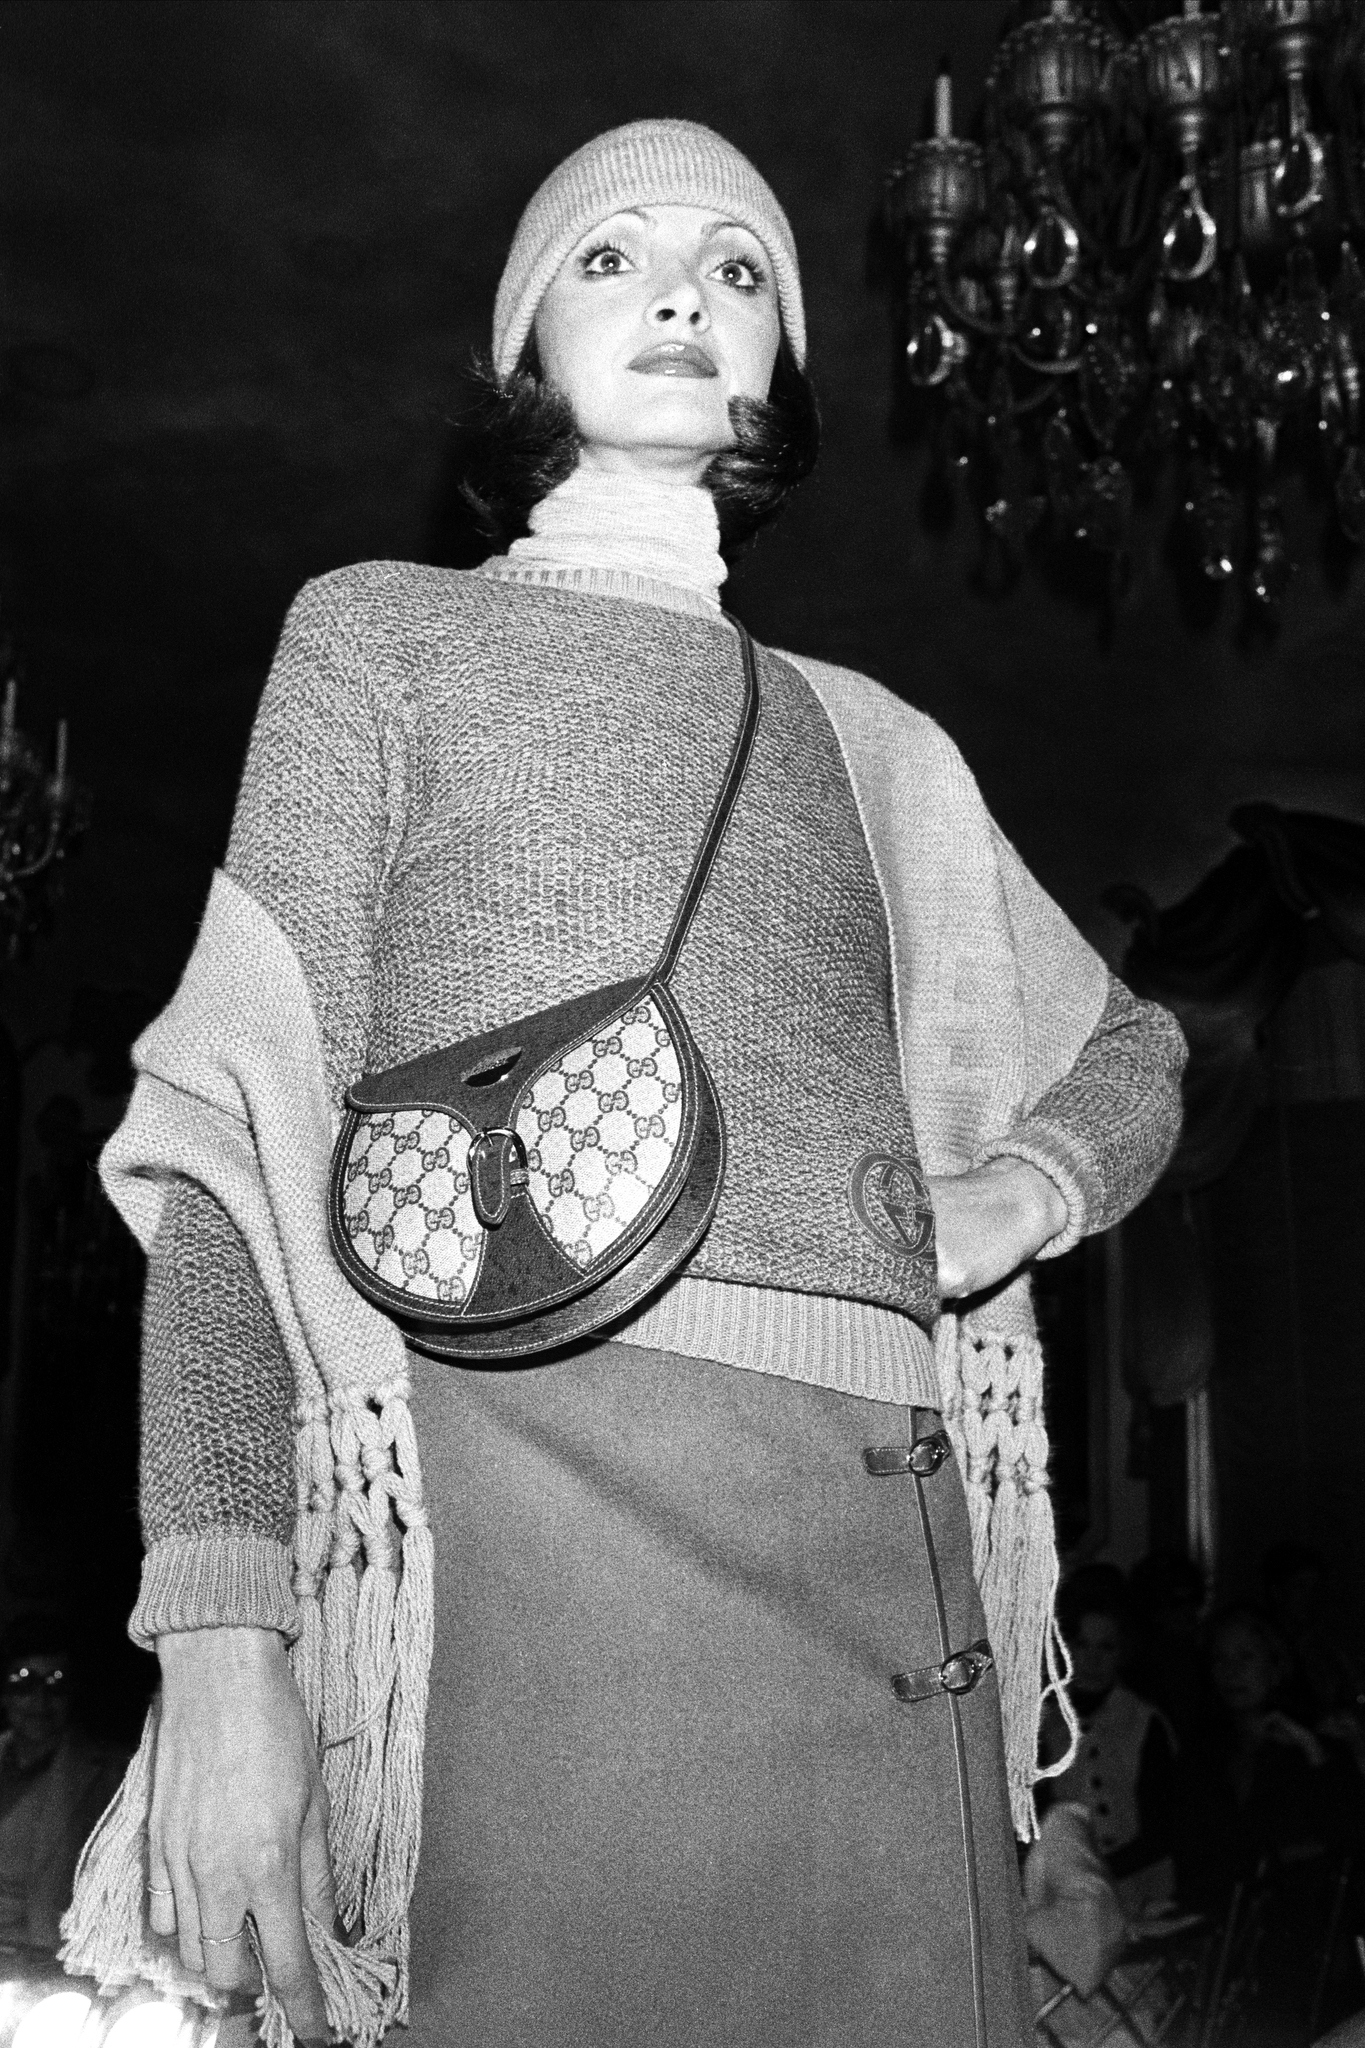 A model poses in Gucci's fall 1976 RTW collection and crossbody saddle bag  during a fashion show at the St. Regis Hotel.